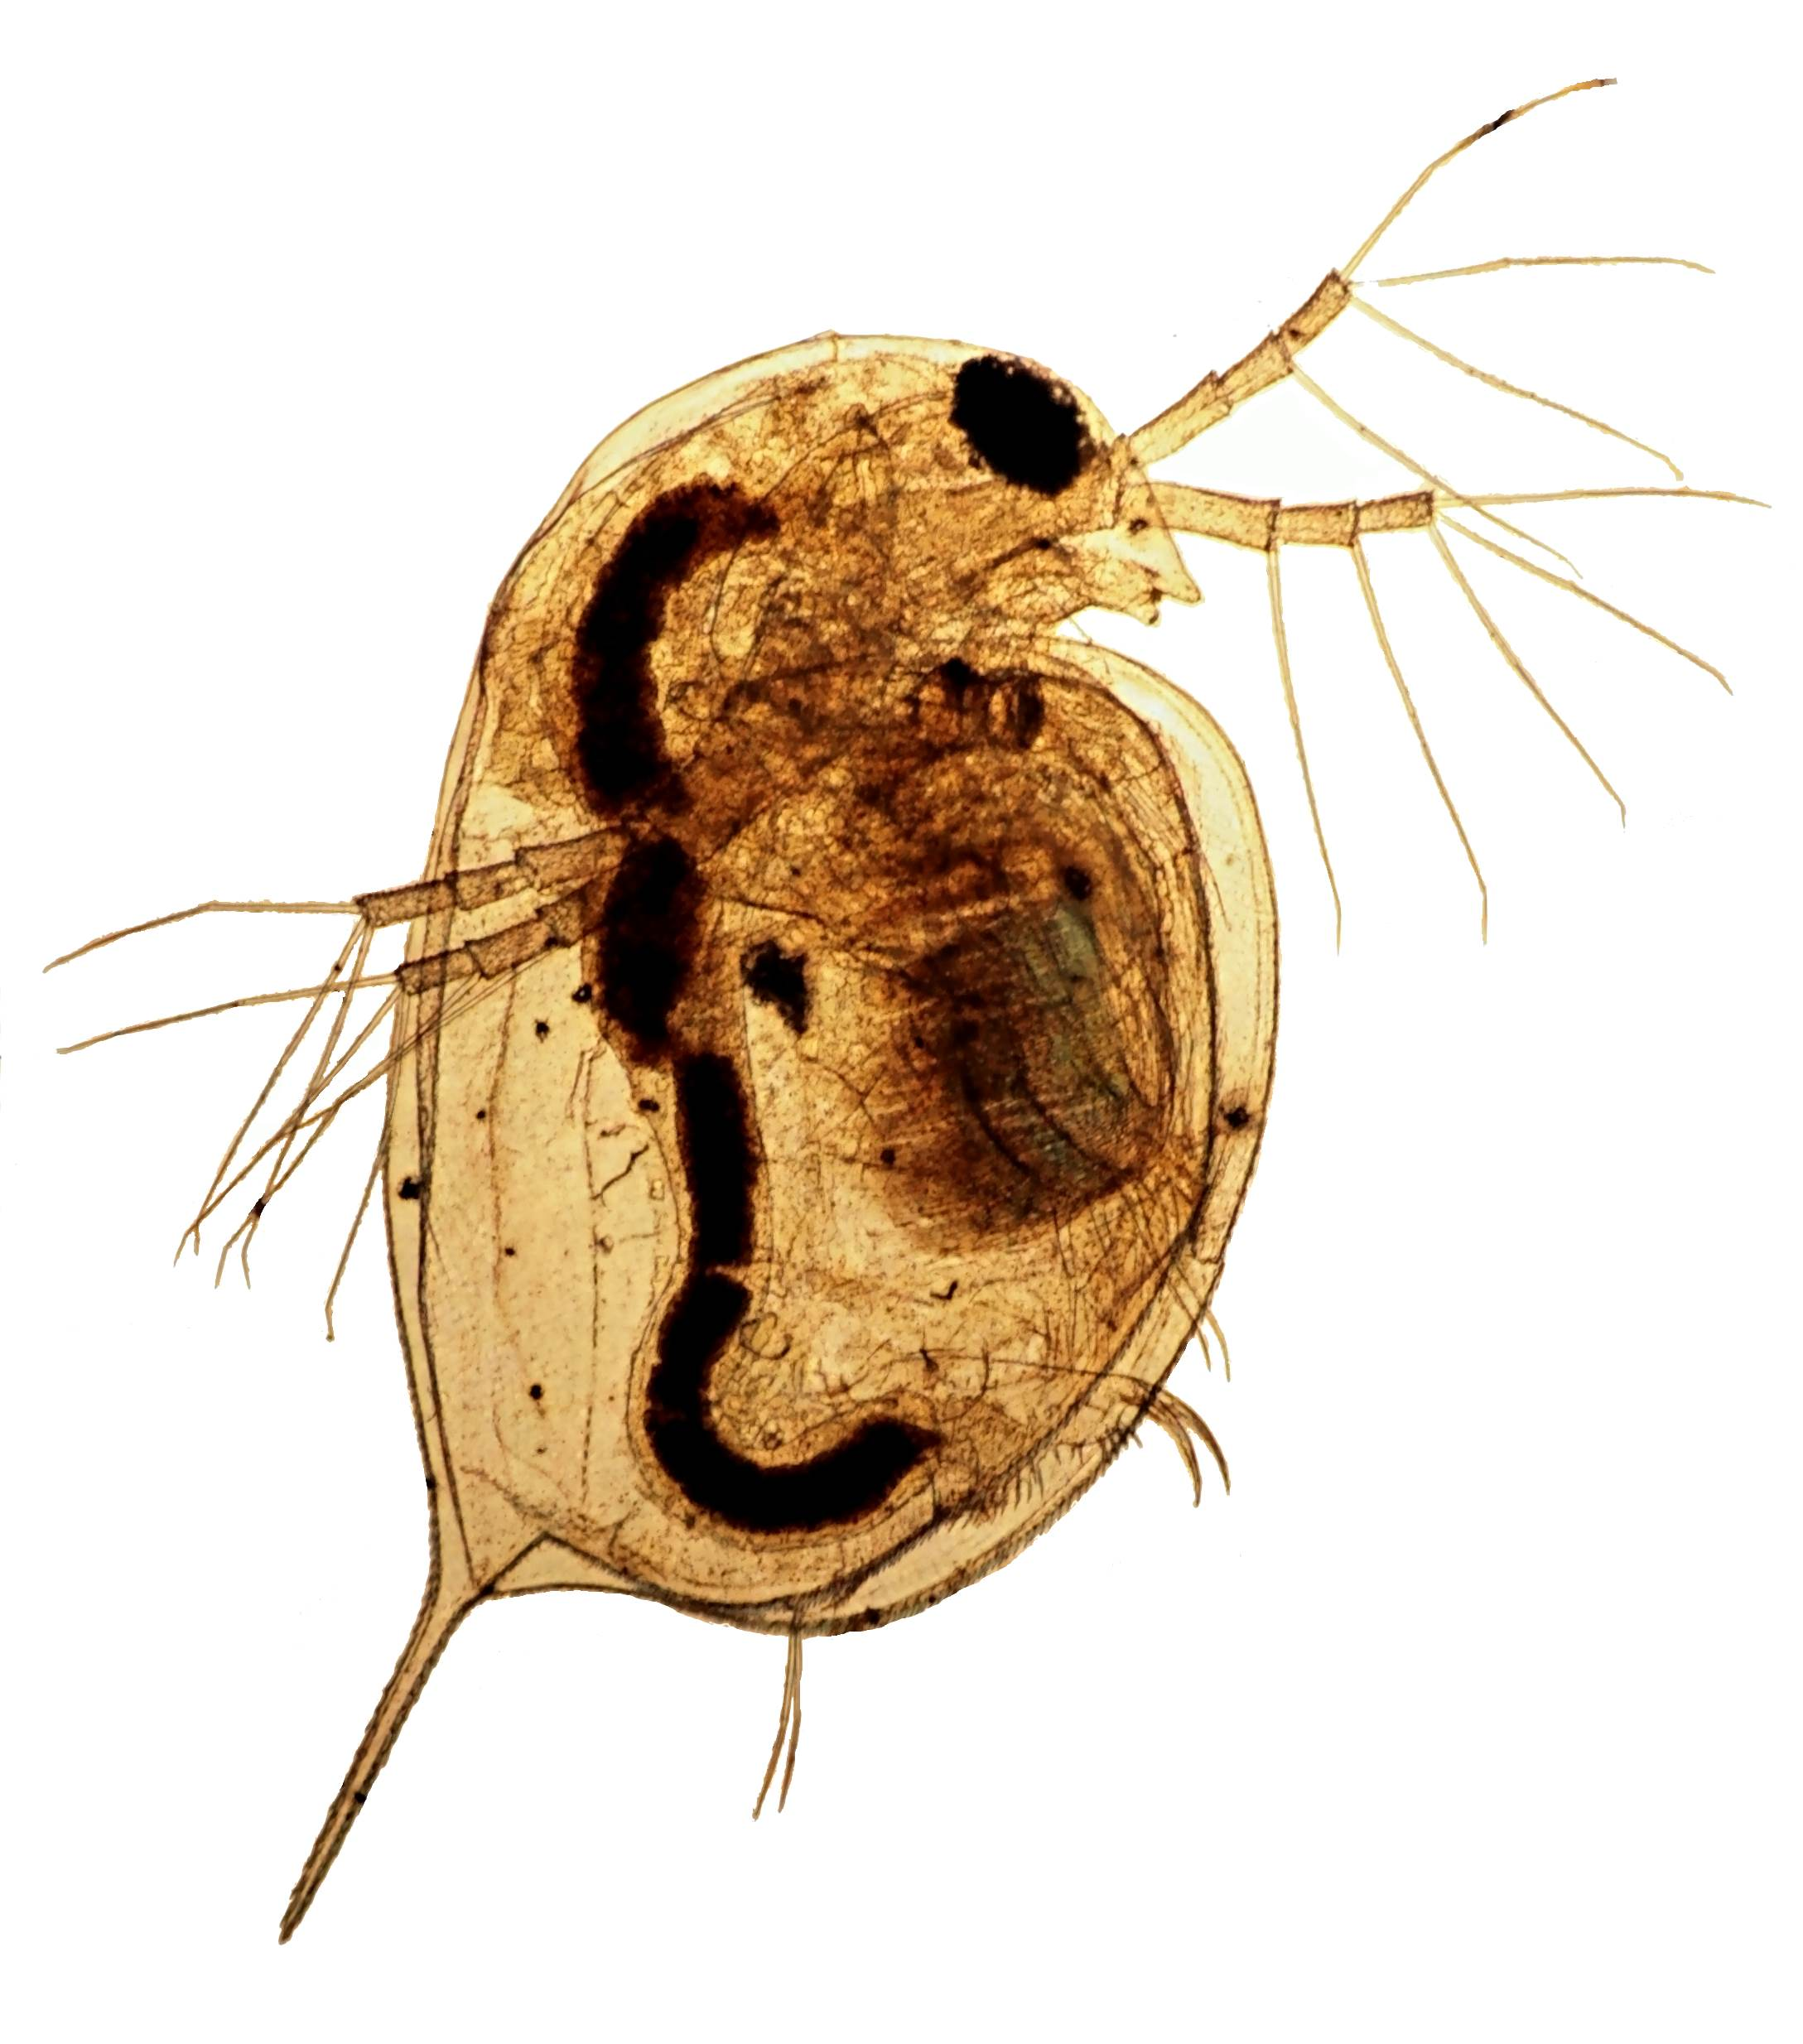 Stacked image of Daphnia